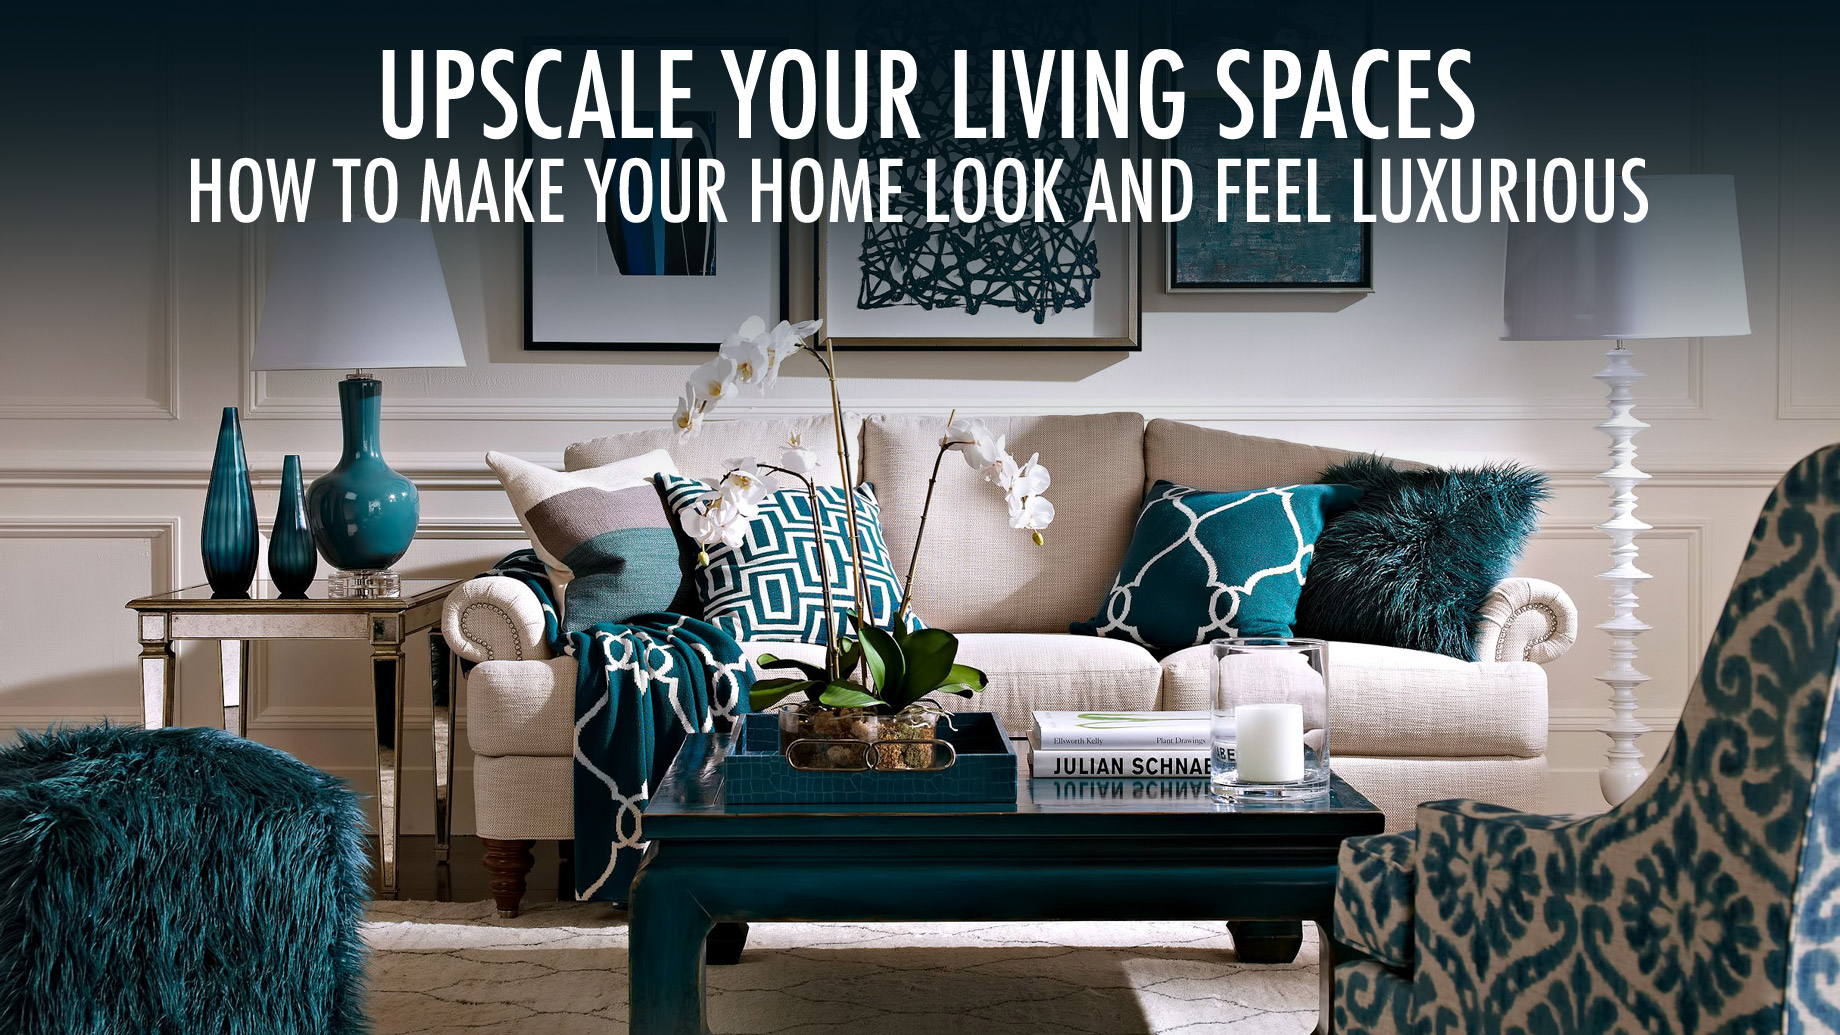 Upscale Your Living Spaces - How to Make Your Home Look and Feel Luxurious